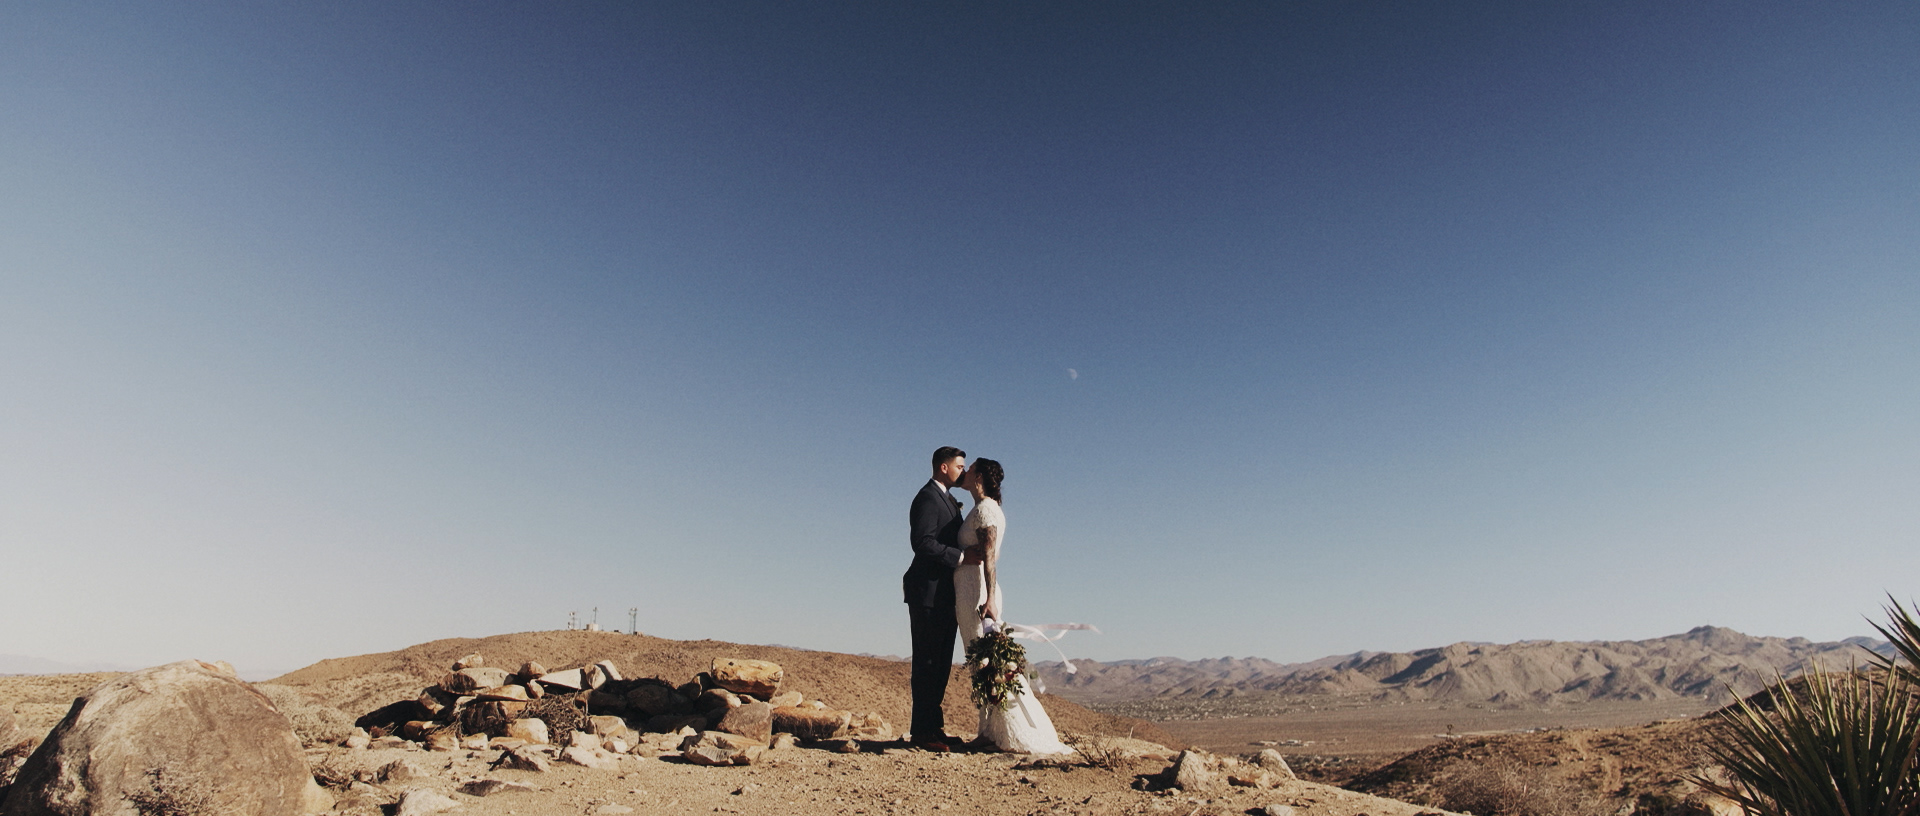 Zac + Zan | Joshua Tree, California | Joshua Tree National Park